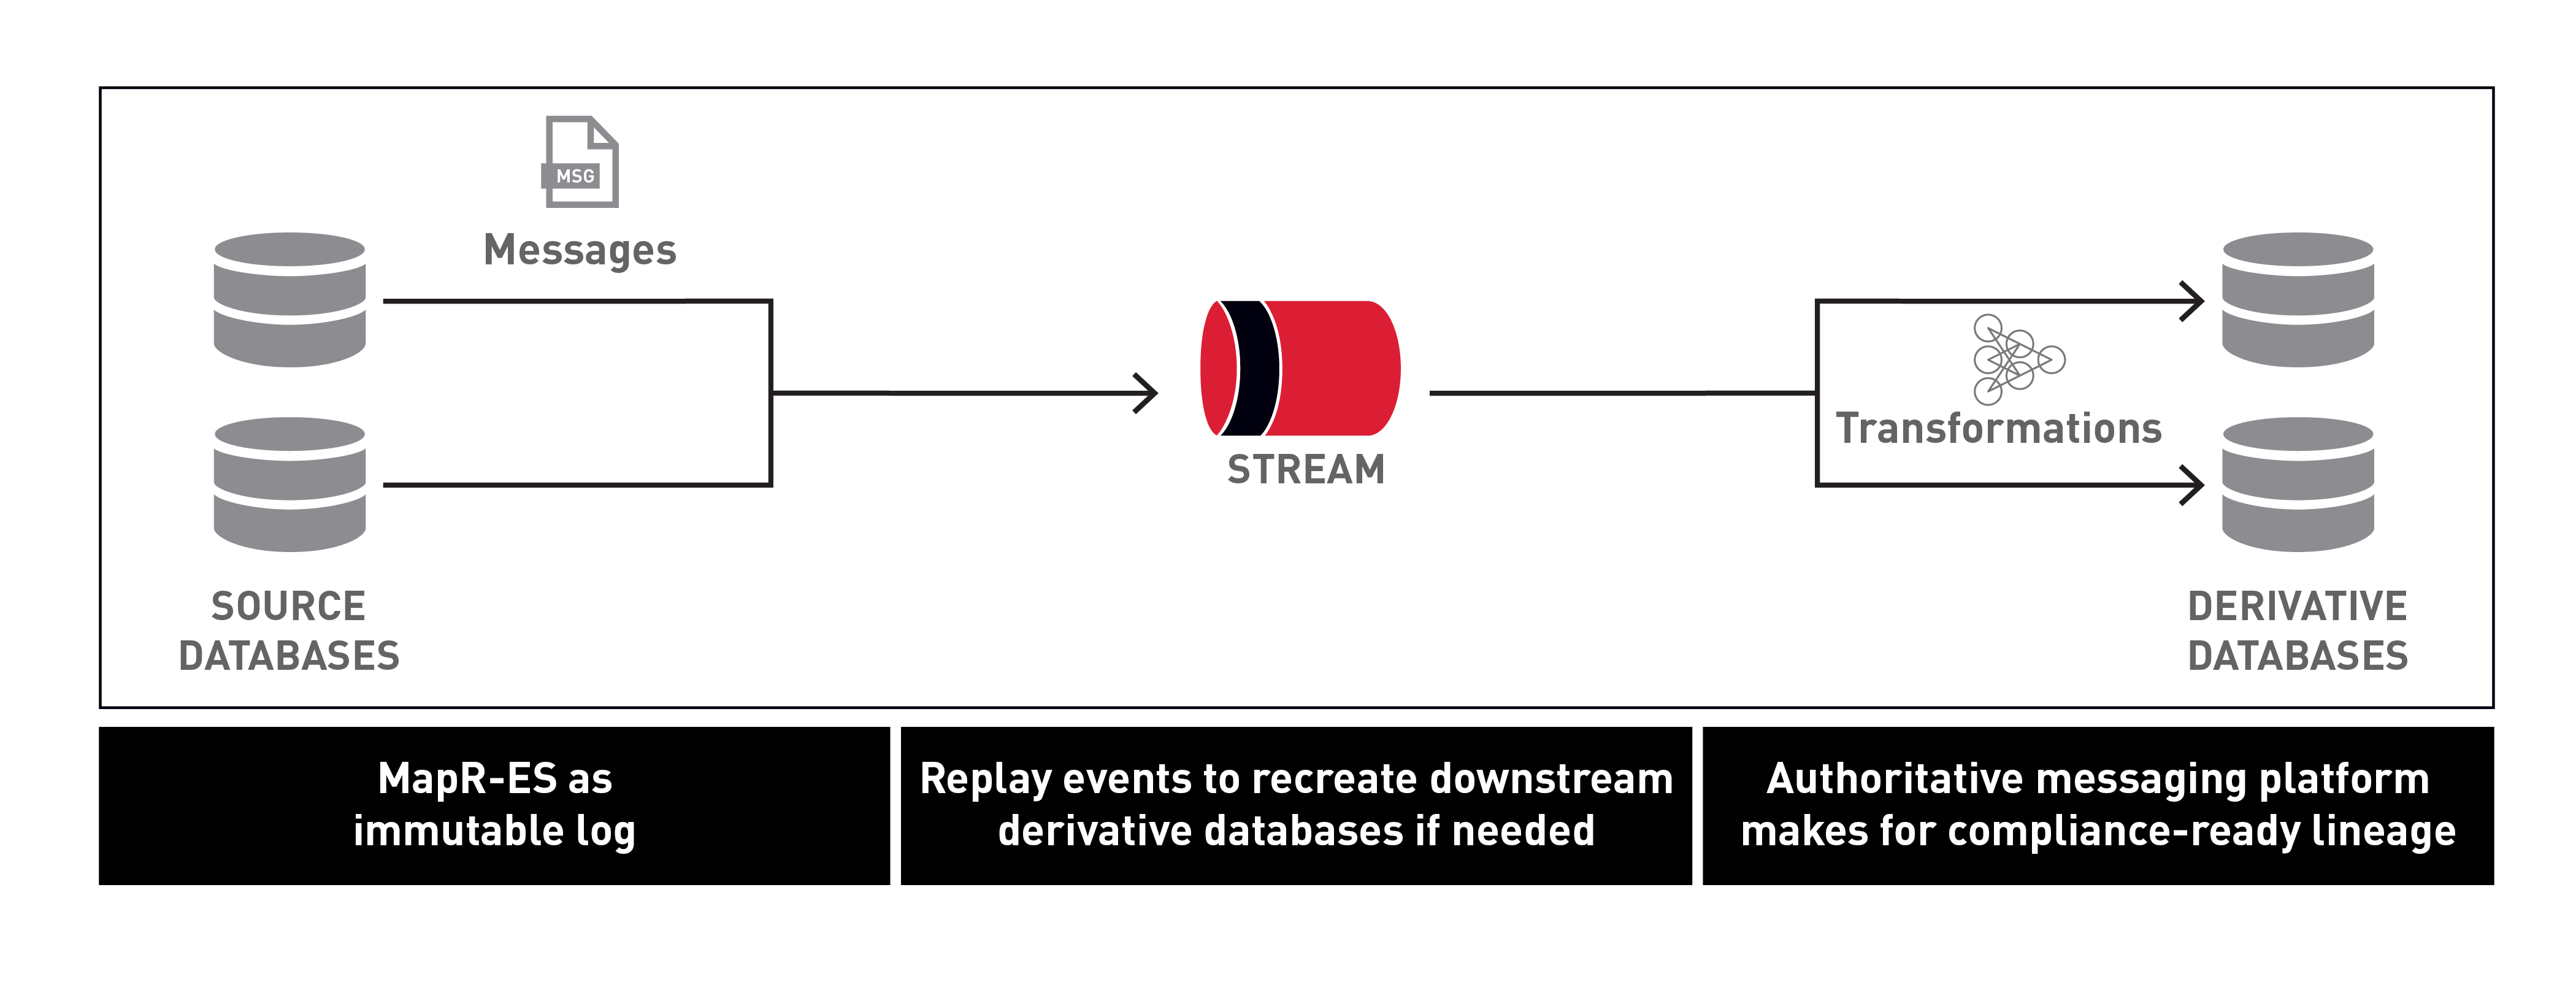 MapR compliance-ready lineage diagram